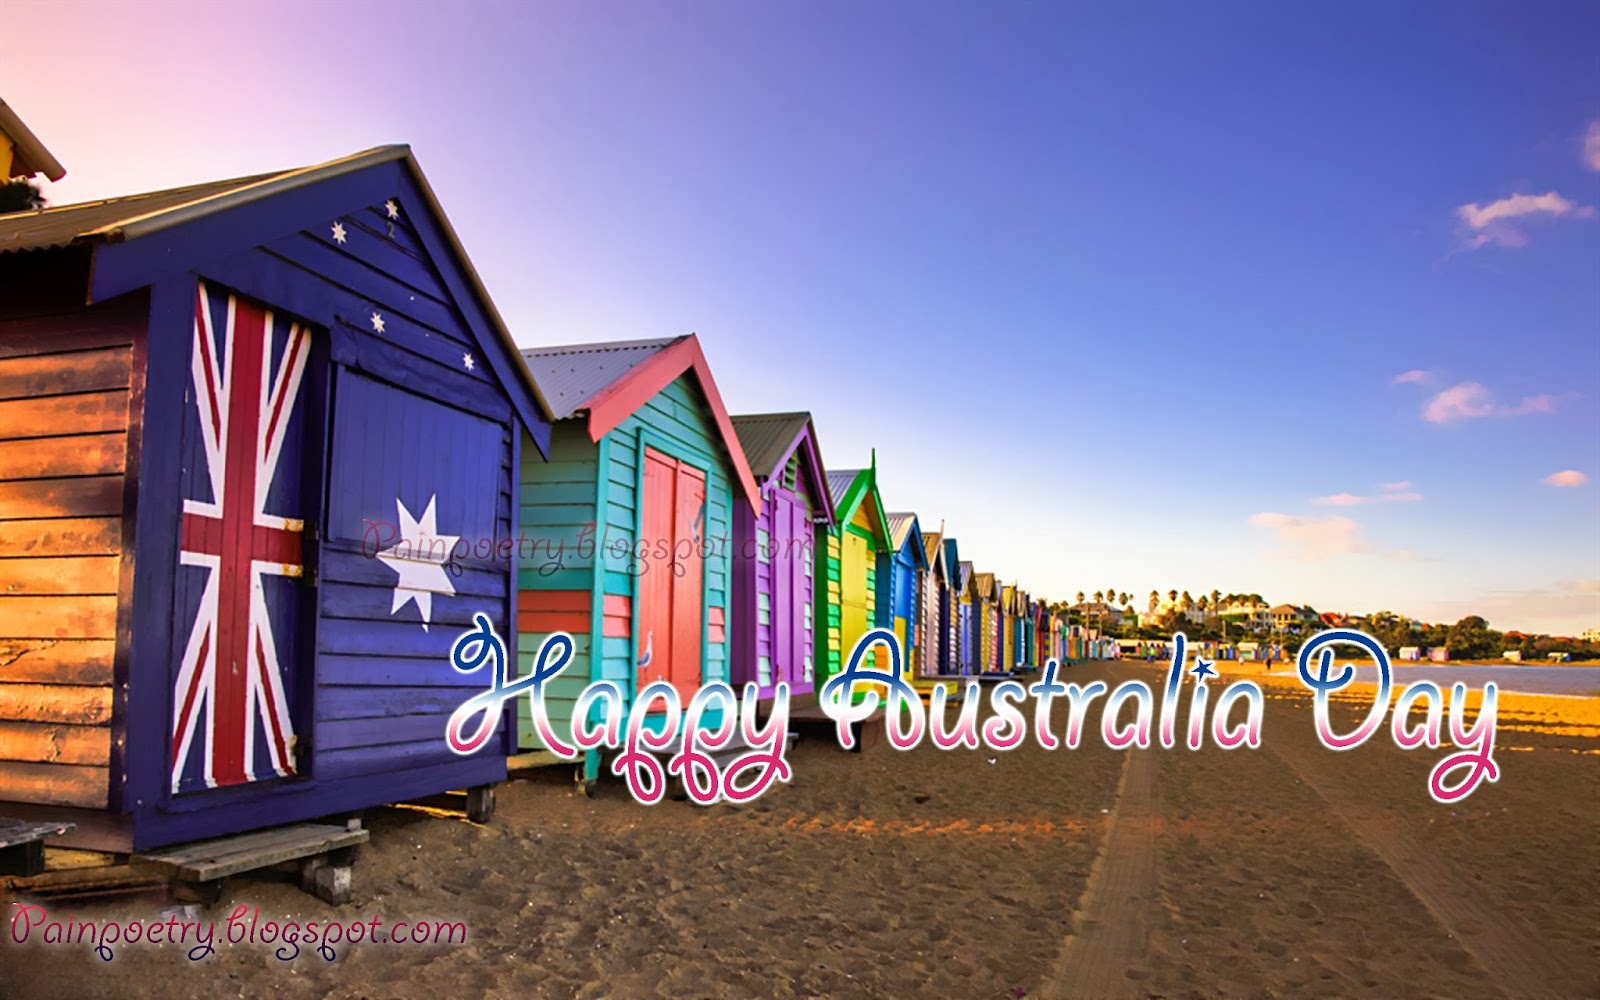 Happy-Australia-Day-Flag-Print-On-Huts-Image-Wide